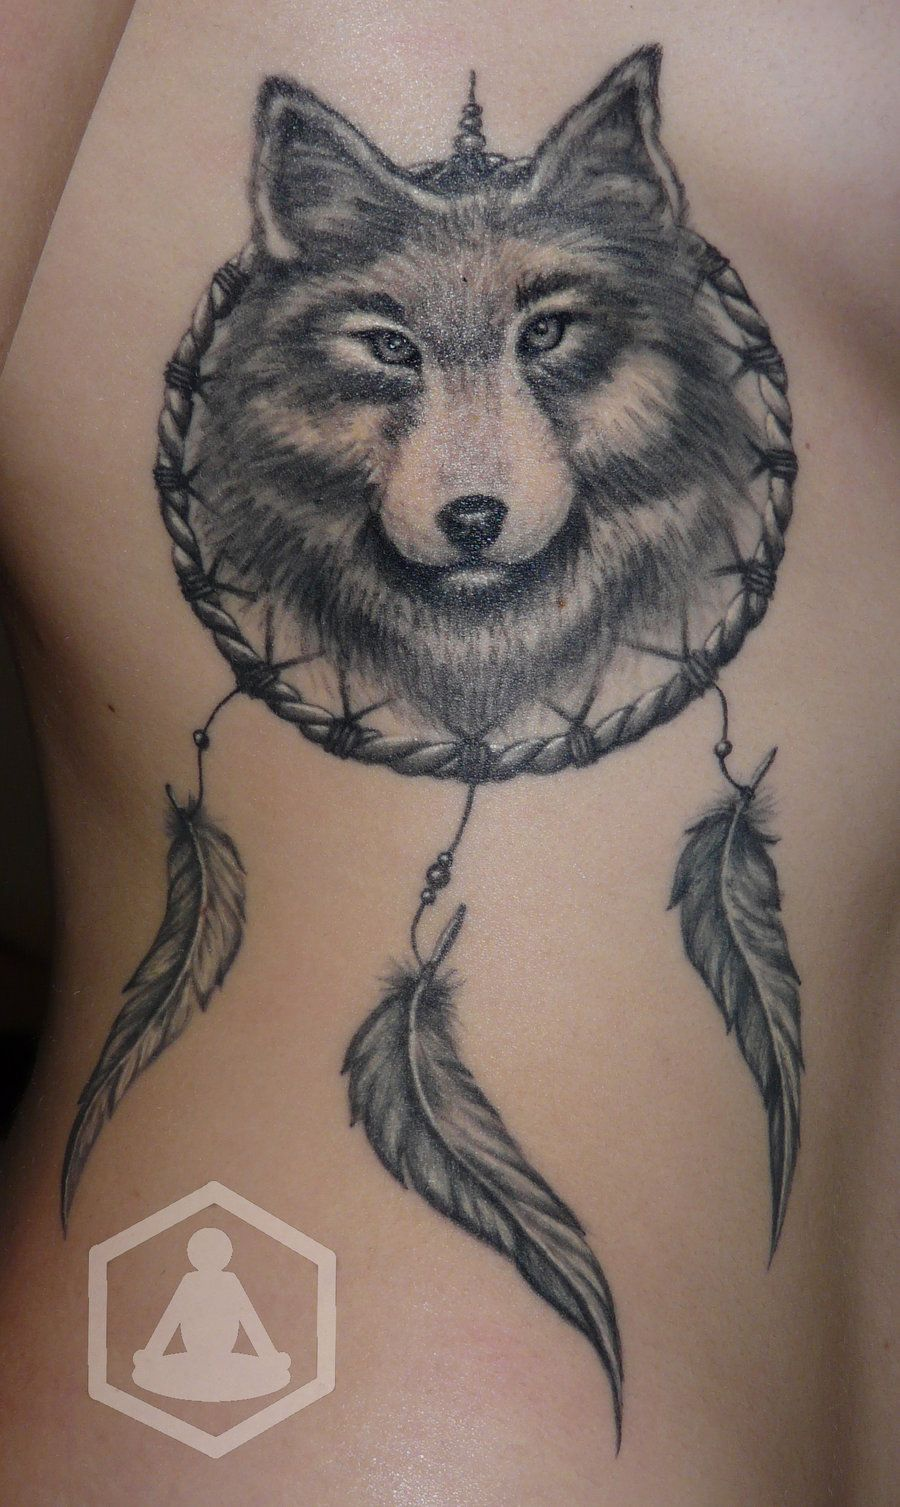 25 Dreamcatcher Wolf Tattoo Designs Images And Pictures Wolf Dreamcatcher Tattoo Dreamcatcher Tattoo Meaning Wolf Tattoo Design